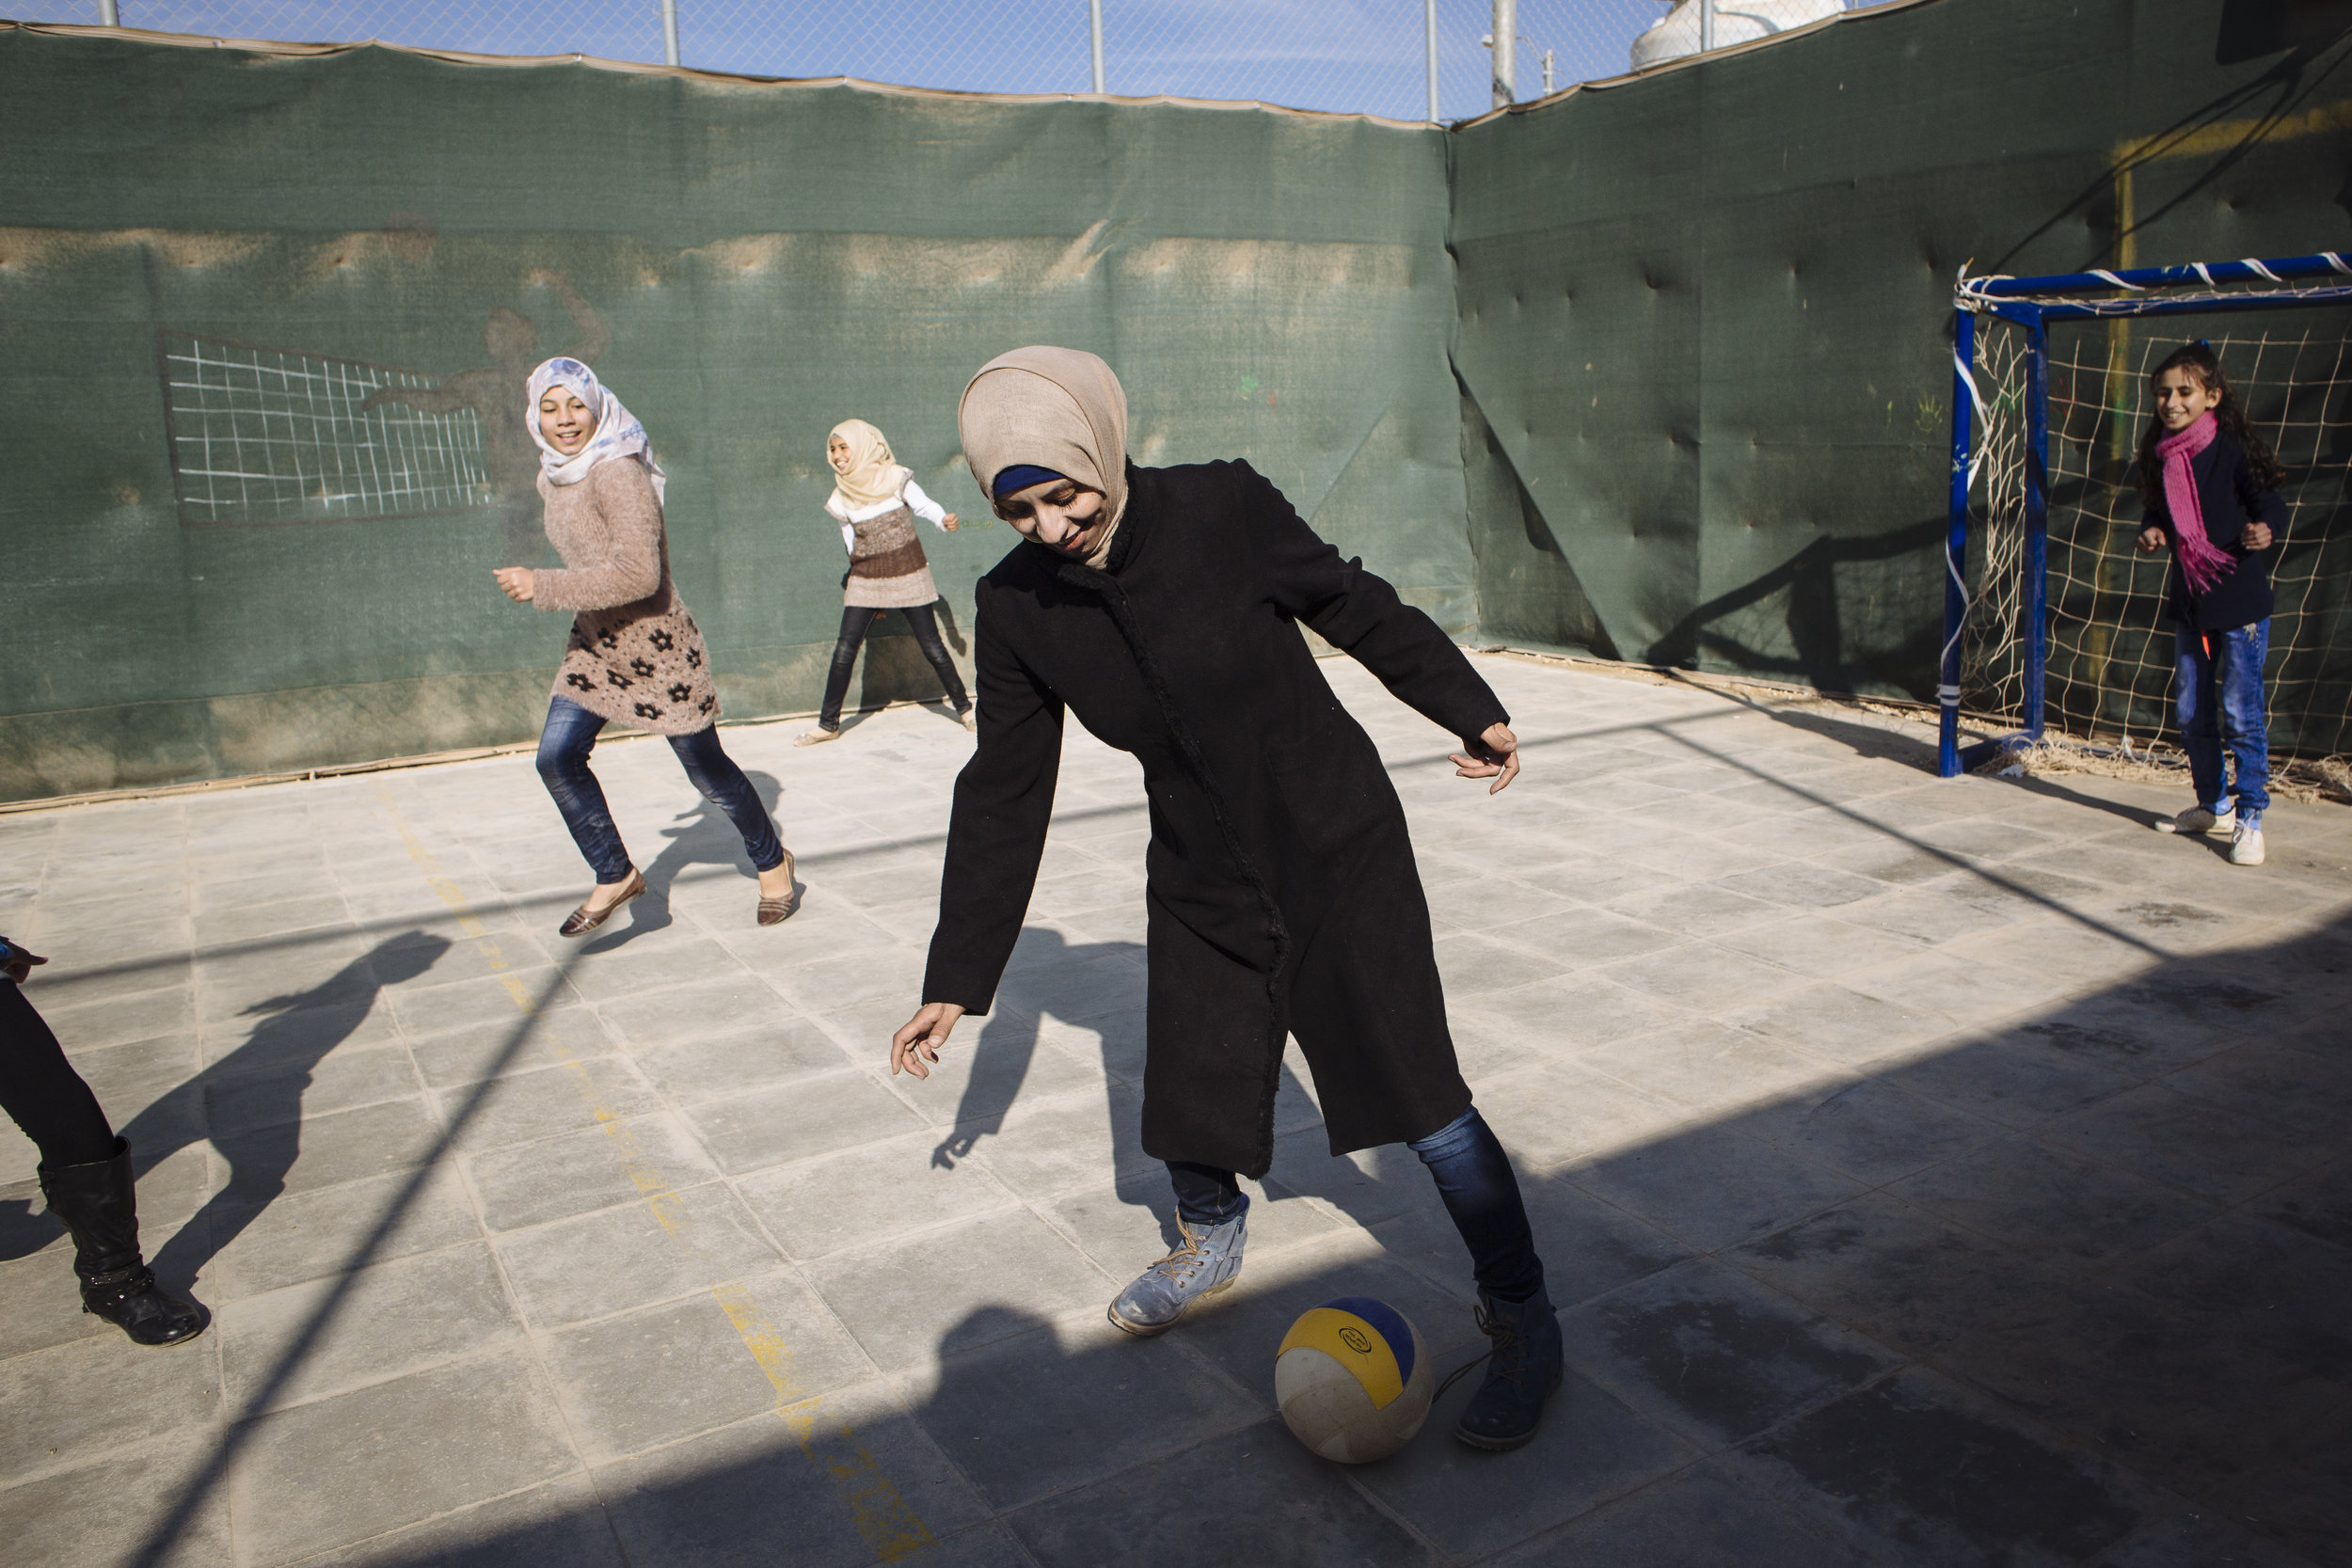 Syrian refugee and coach Nawar,  29, centre, controls the ball as she plays football with her students Amneh, 12, left, Ariam, 12, back left, and Muna, 12, right, at the International Relief and Development (IRD) compound in Za'atari refugee camp, Mafraq Governorate, Jordan.